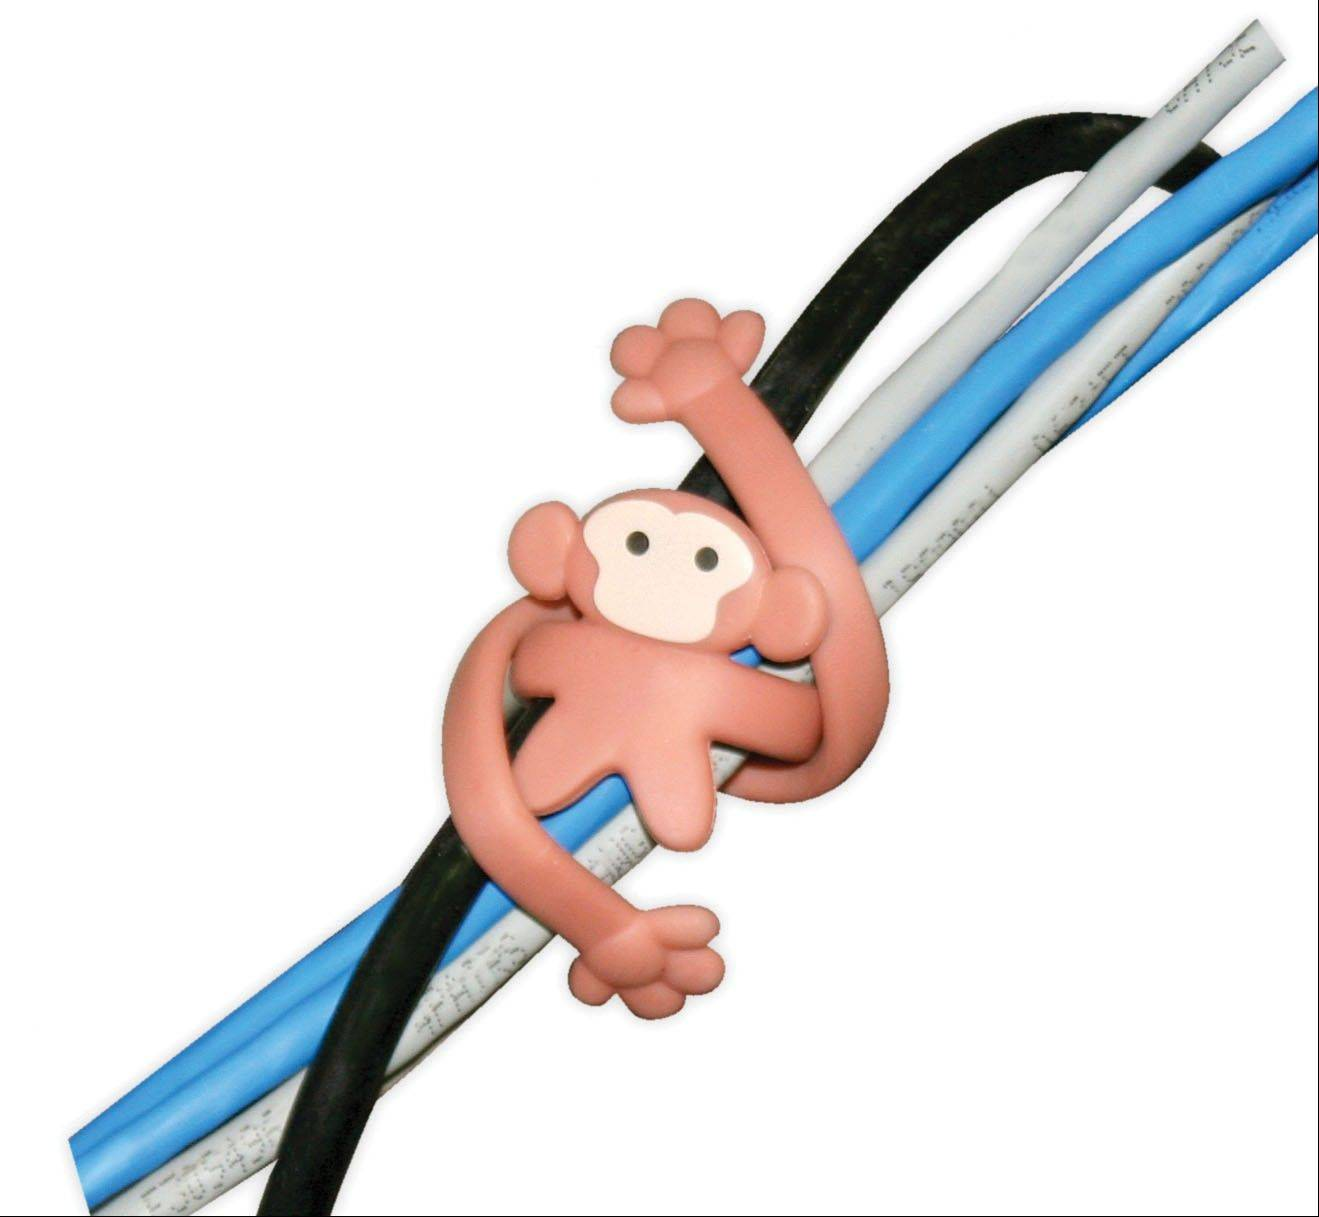 Cable monkey, $5